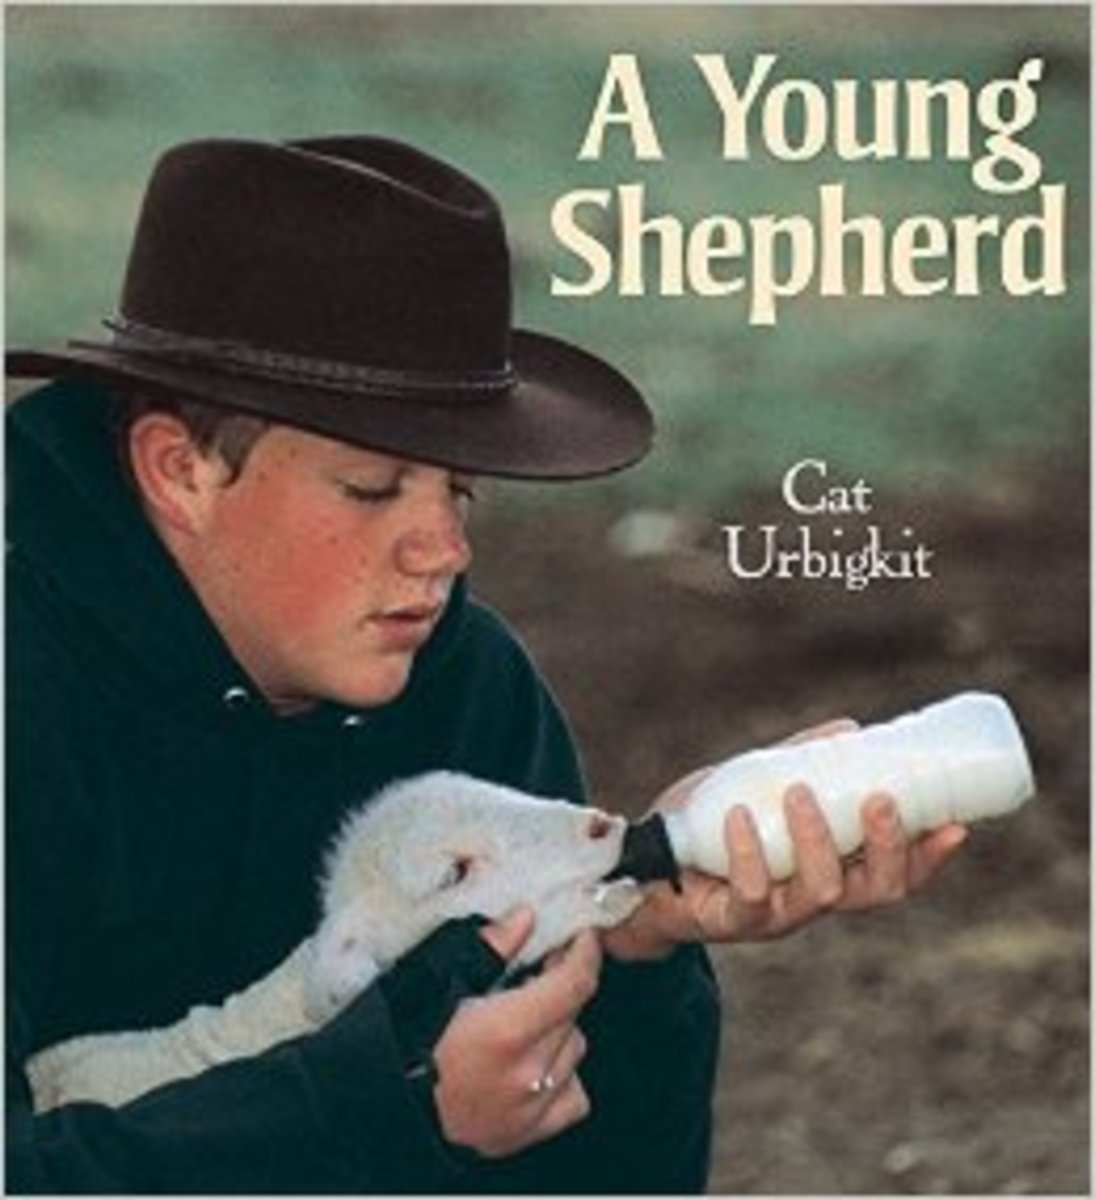 A Young Shepherd by Cat Urbigkit  - All book images are from amazon.com .